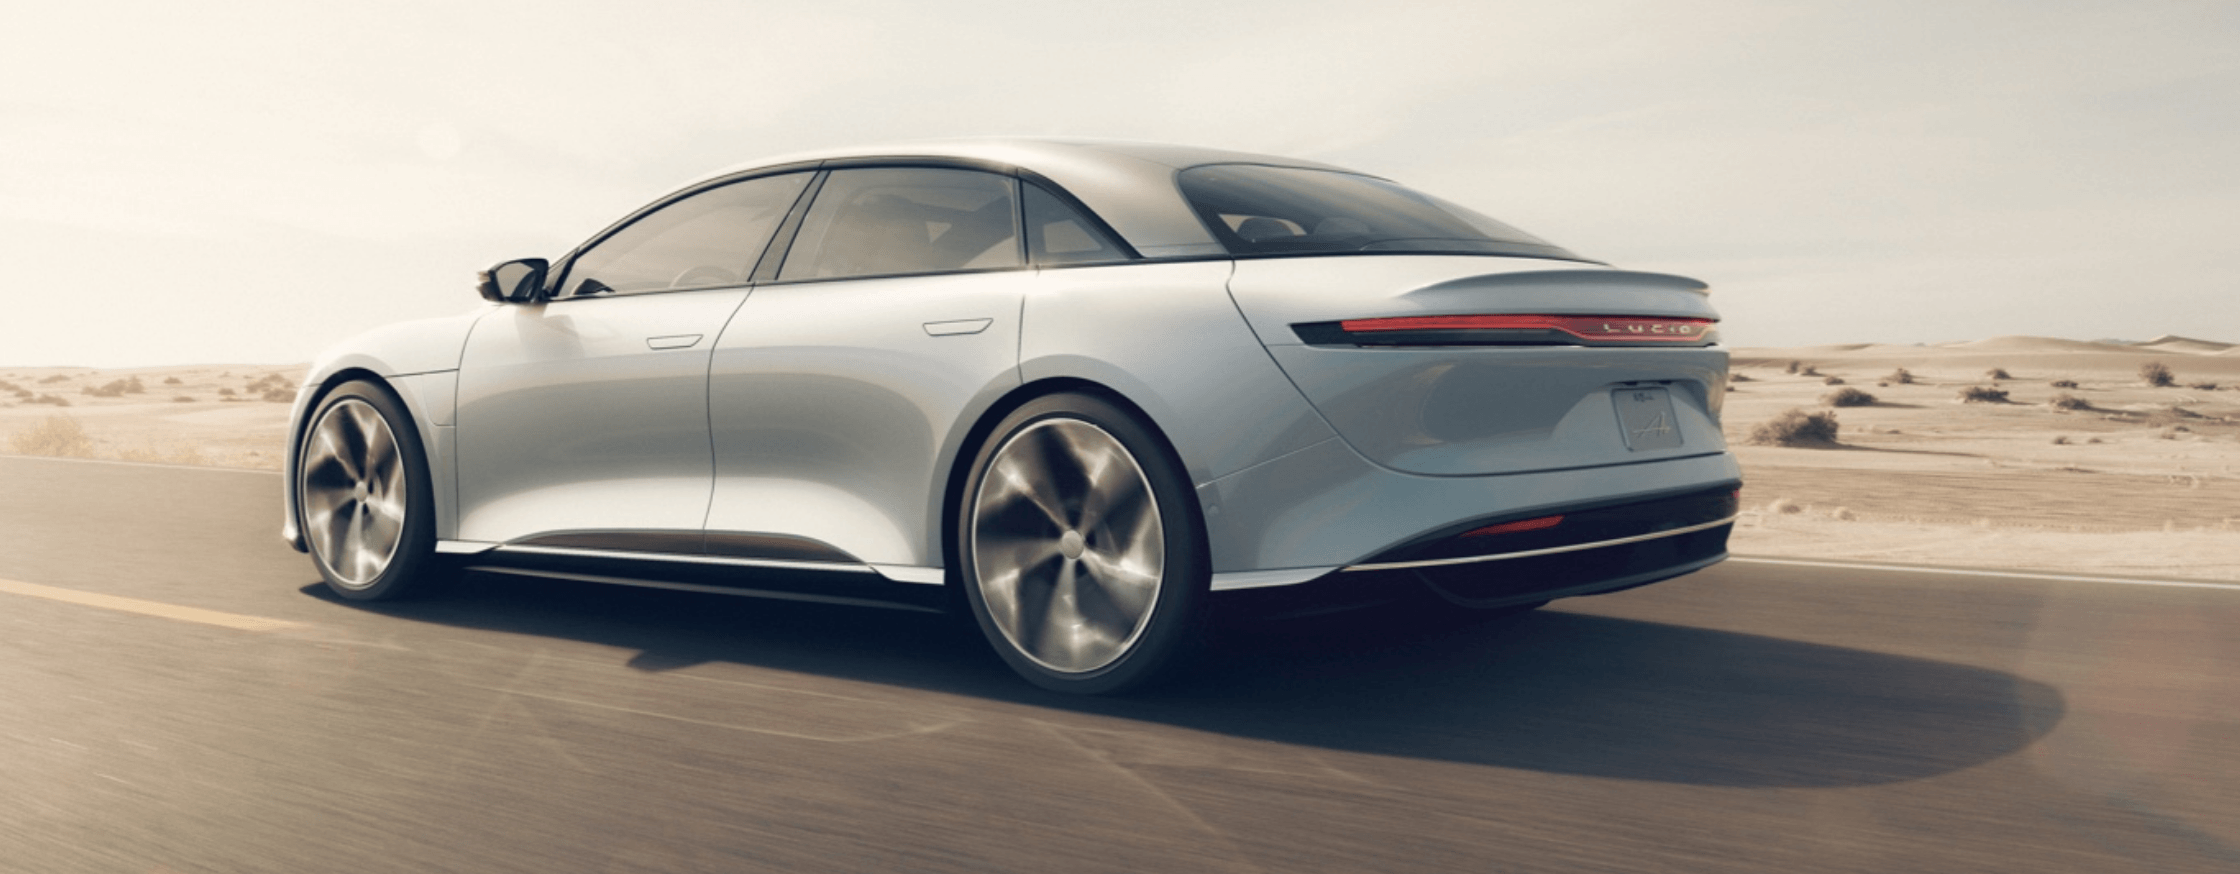 EV Company News For The Month Of October 2020 | Seeking Alpha